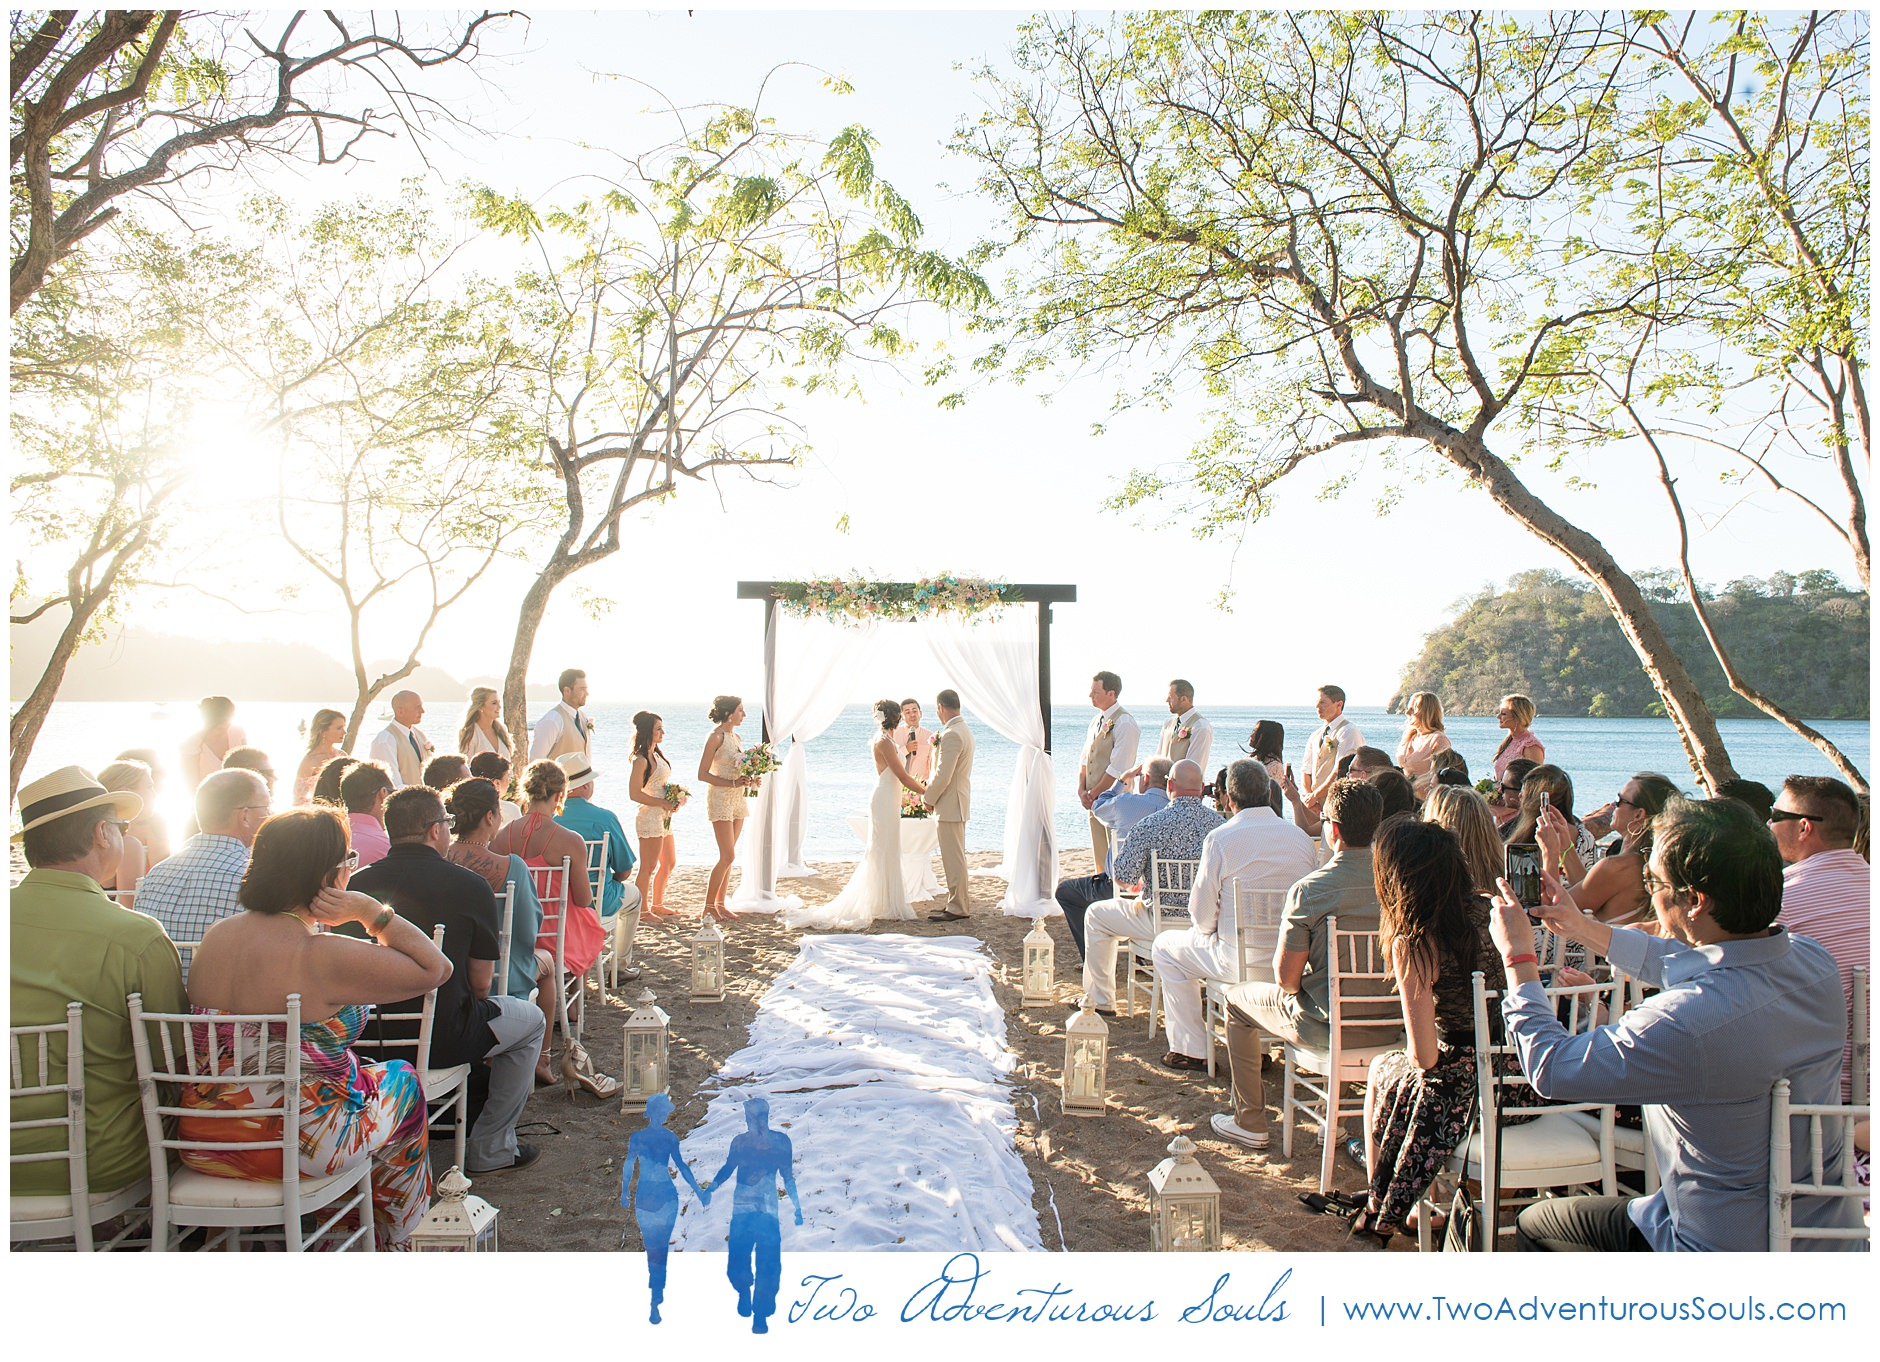 How to get married in Costa Rica, Costa Rica wedding photographers - HTGMICR_0002.jpg